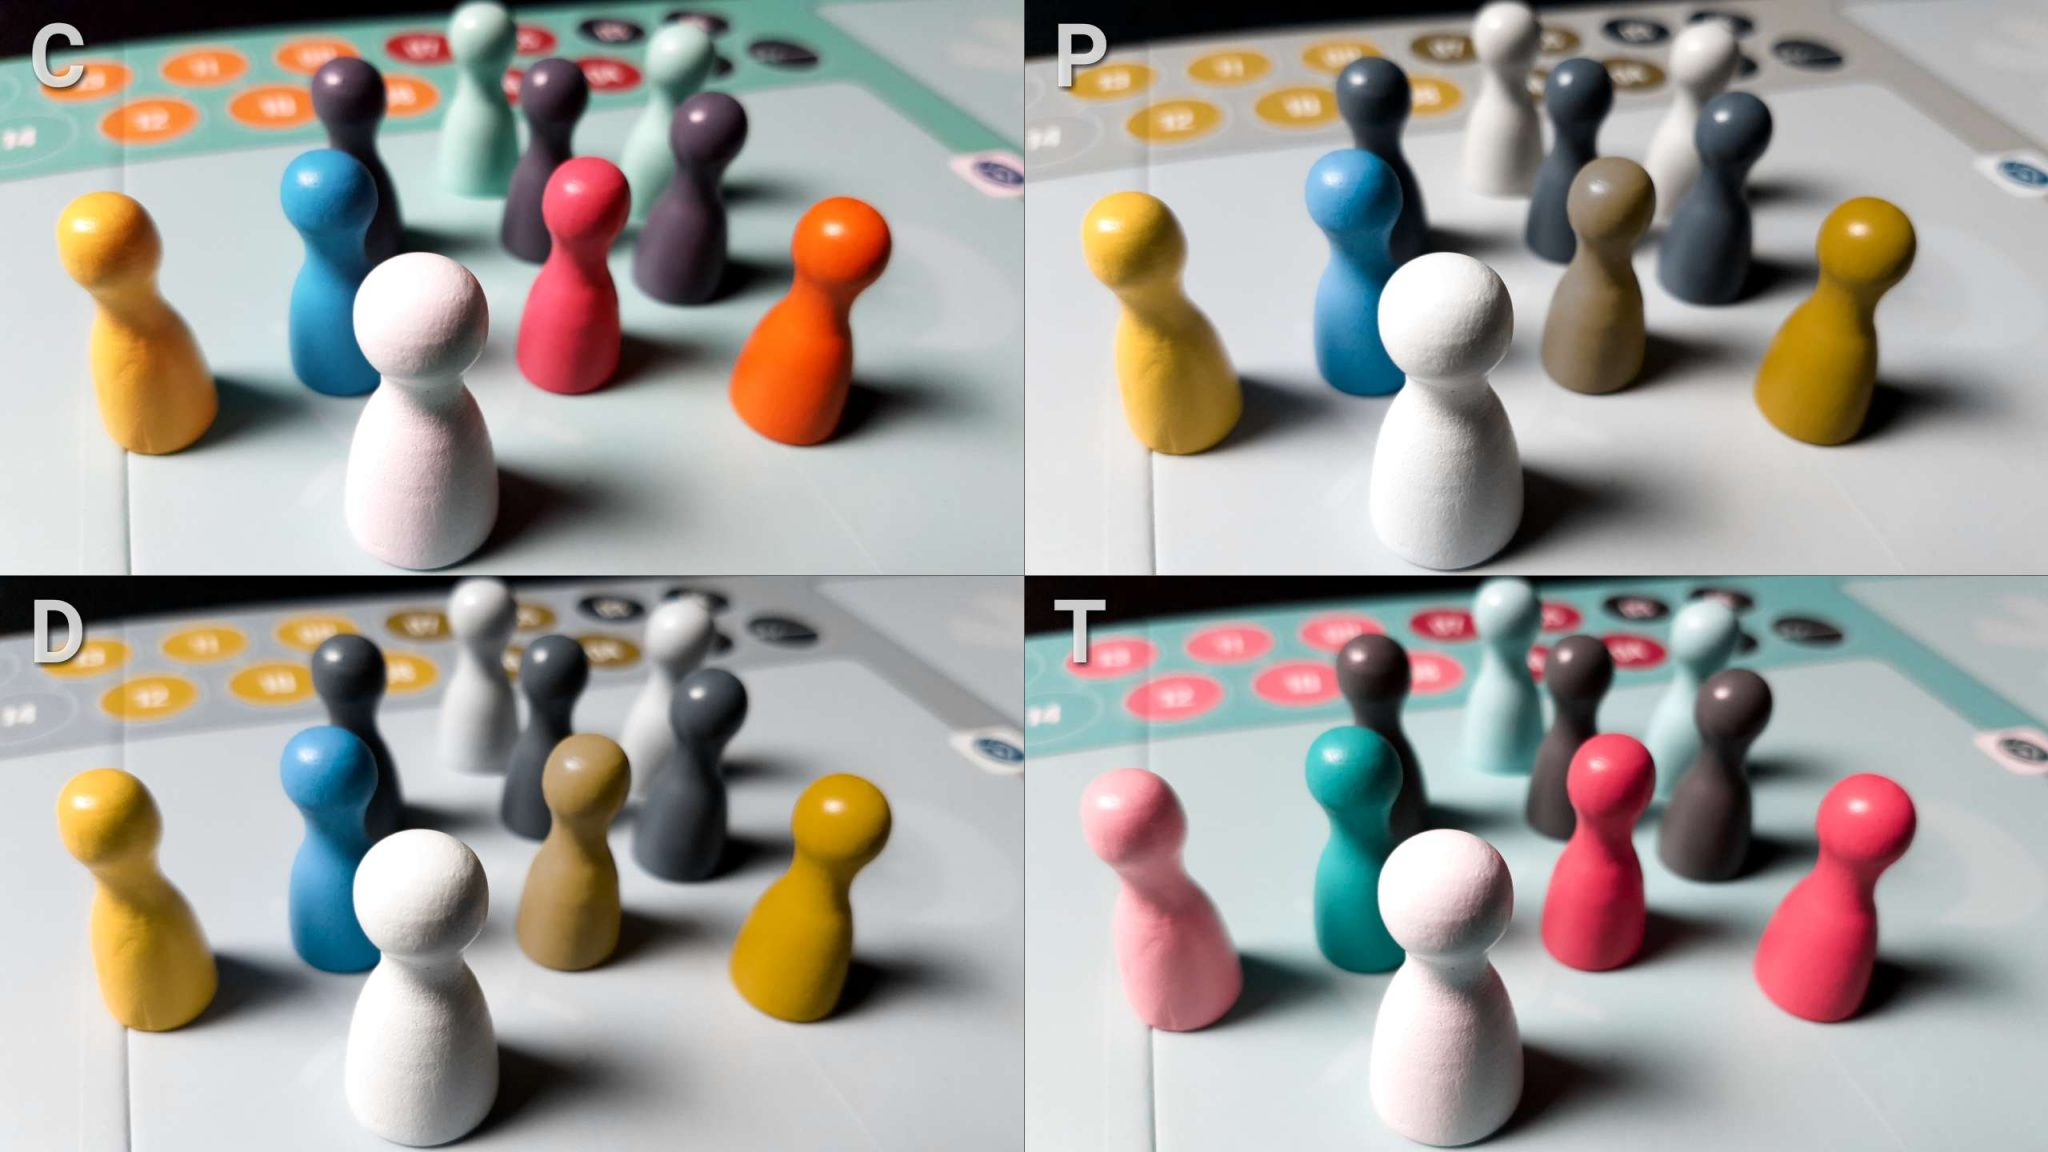 Colour blindness and pawns